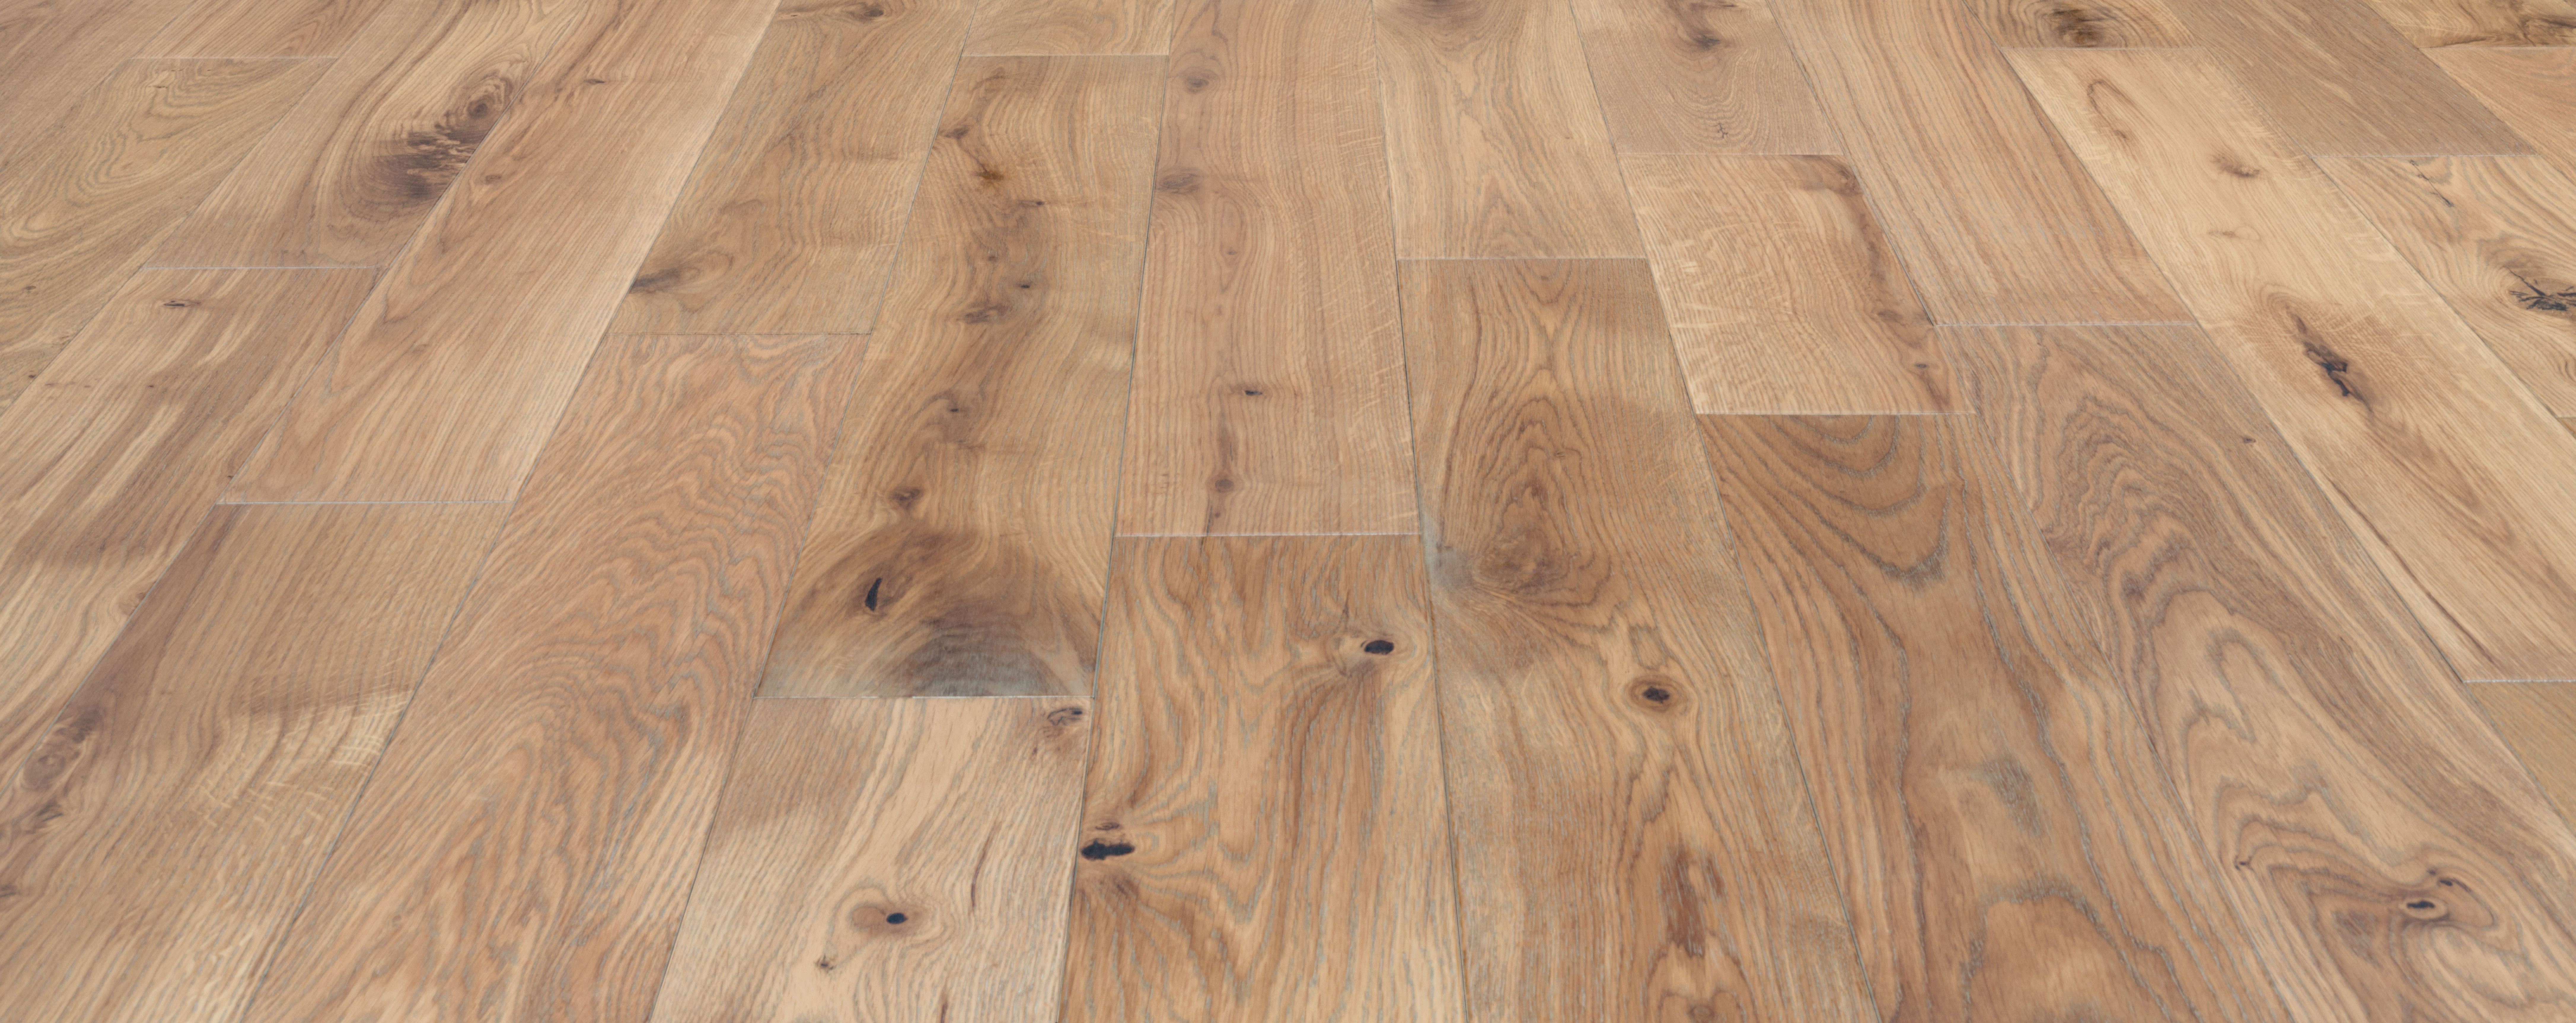 white oak plank hardwood flooring of harbor oak 5″ white oak dune etx surfaces with etx surfaces harbor oak white oak dune wood flooring